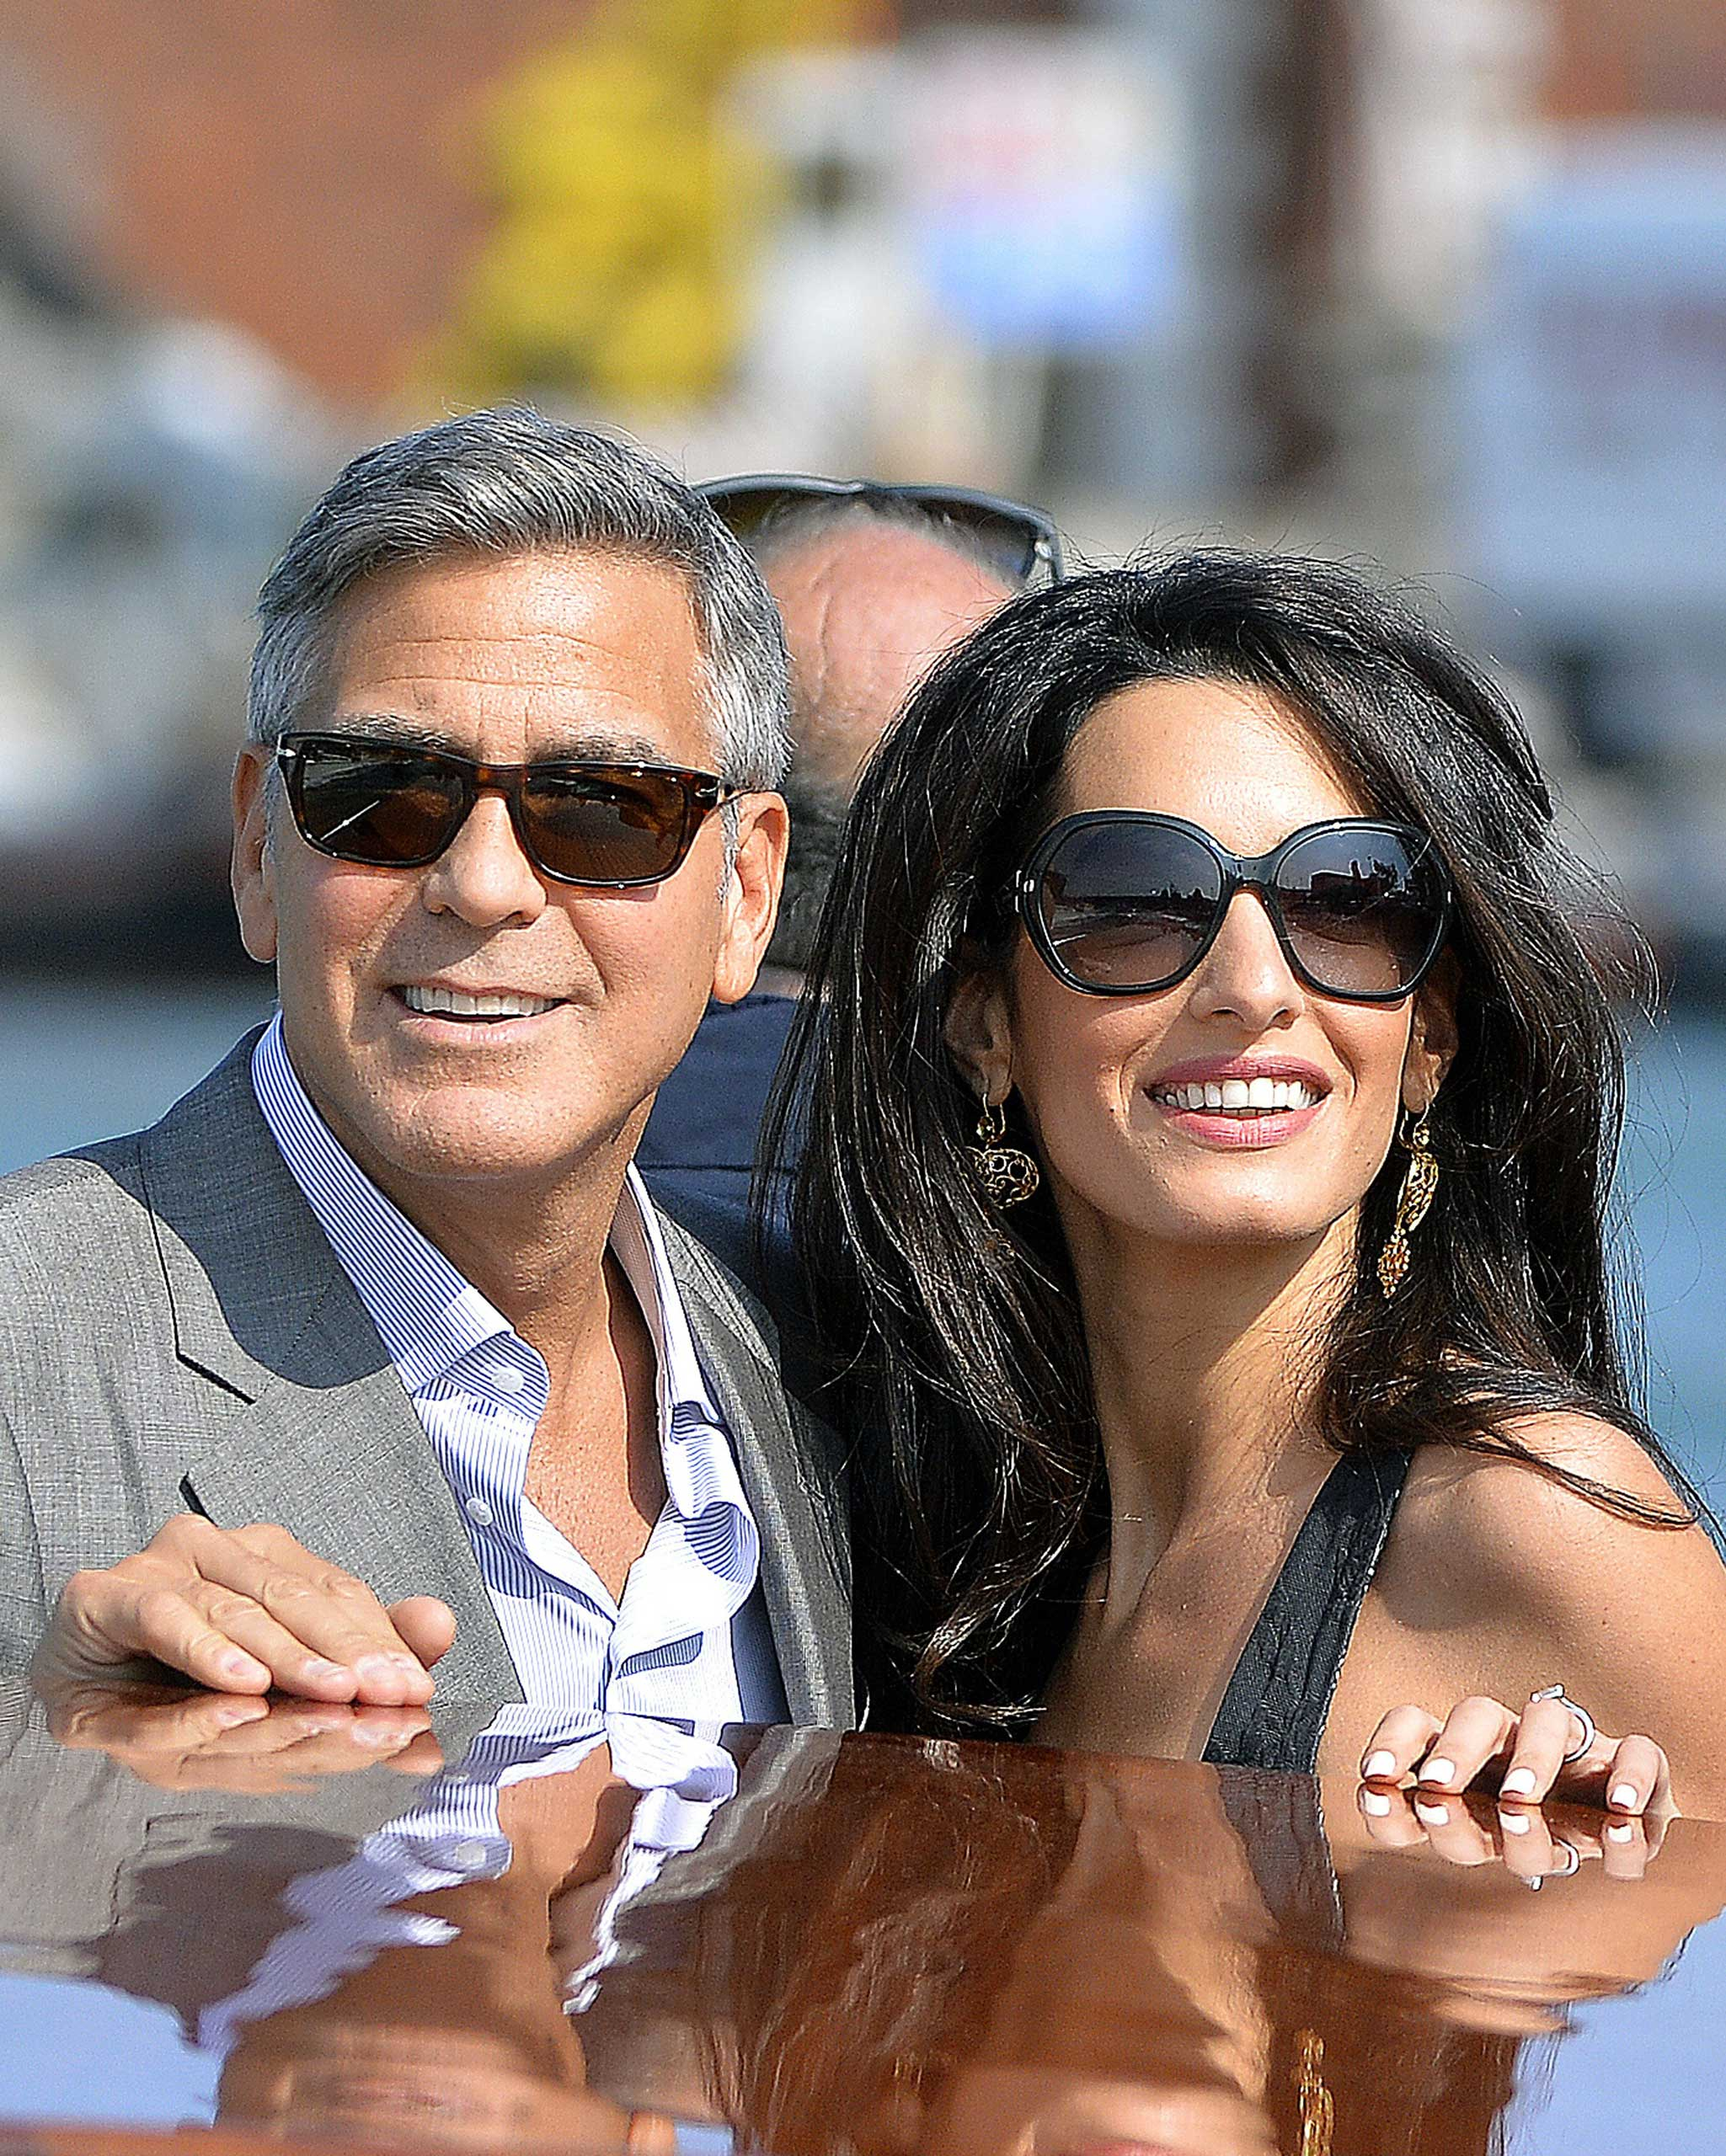 In 2014 Clooney proposed to girlfriend Amal Alamuddin, despite claims that he would never marry again.